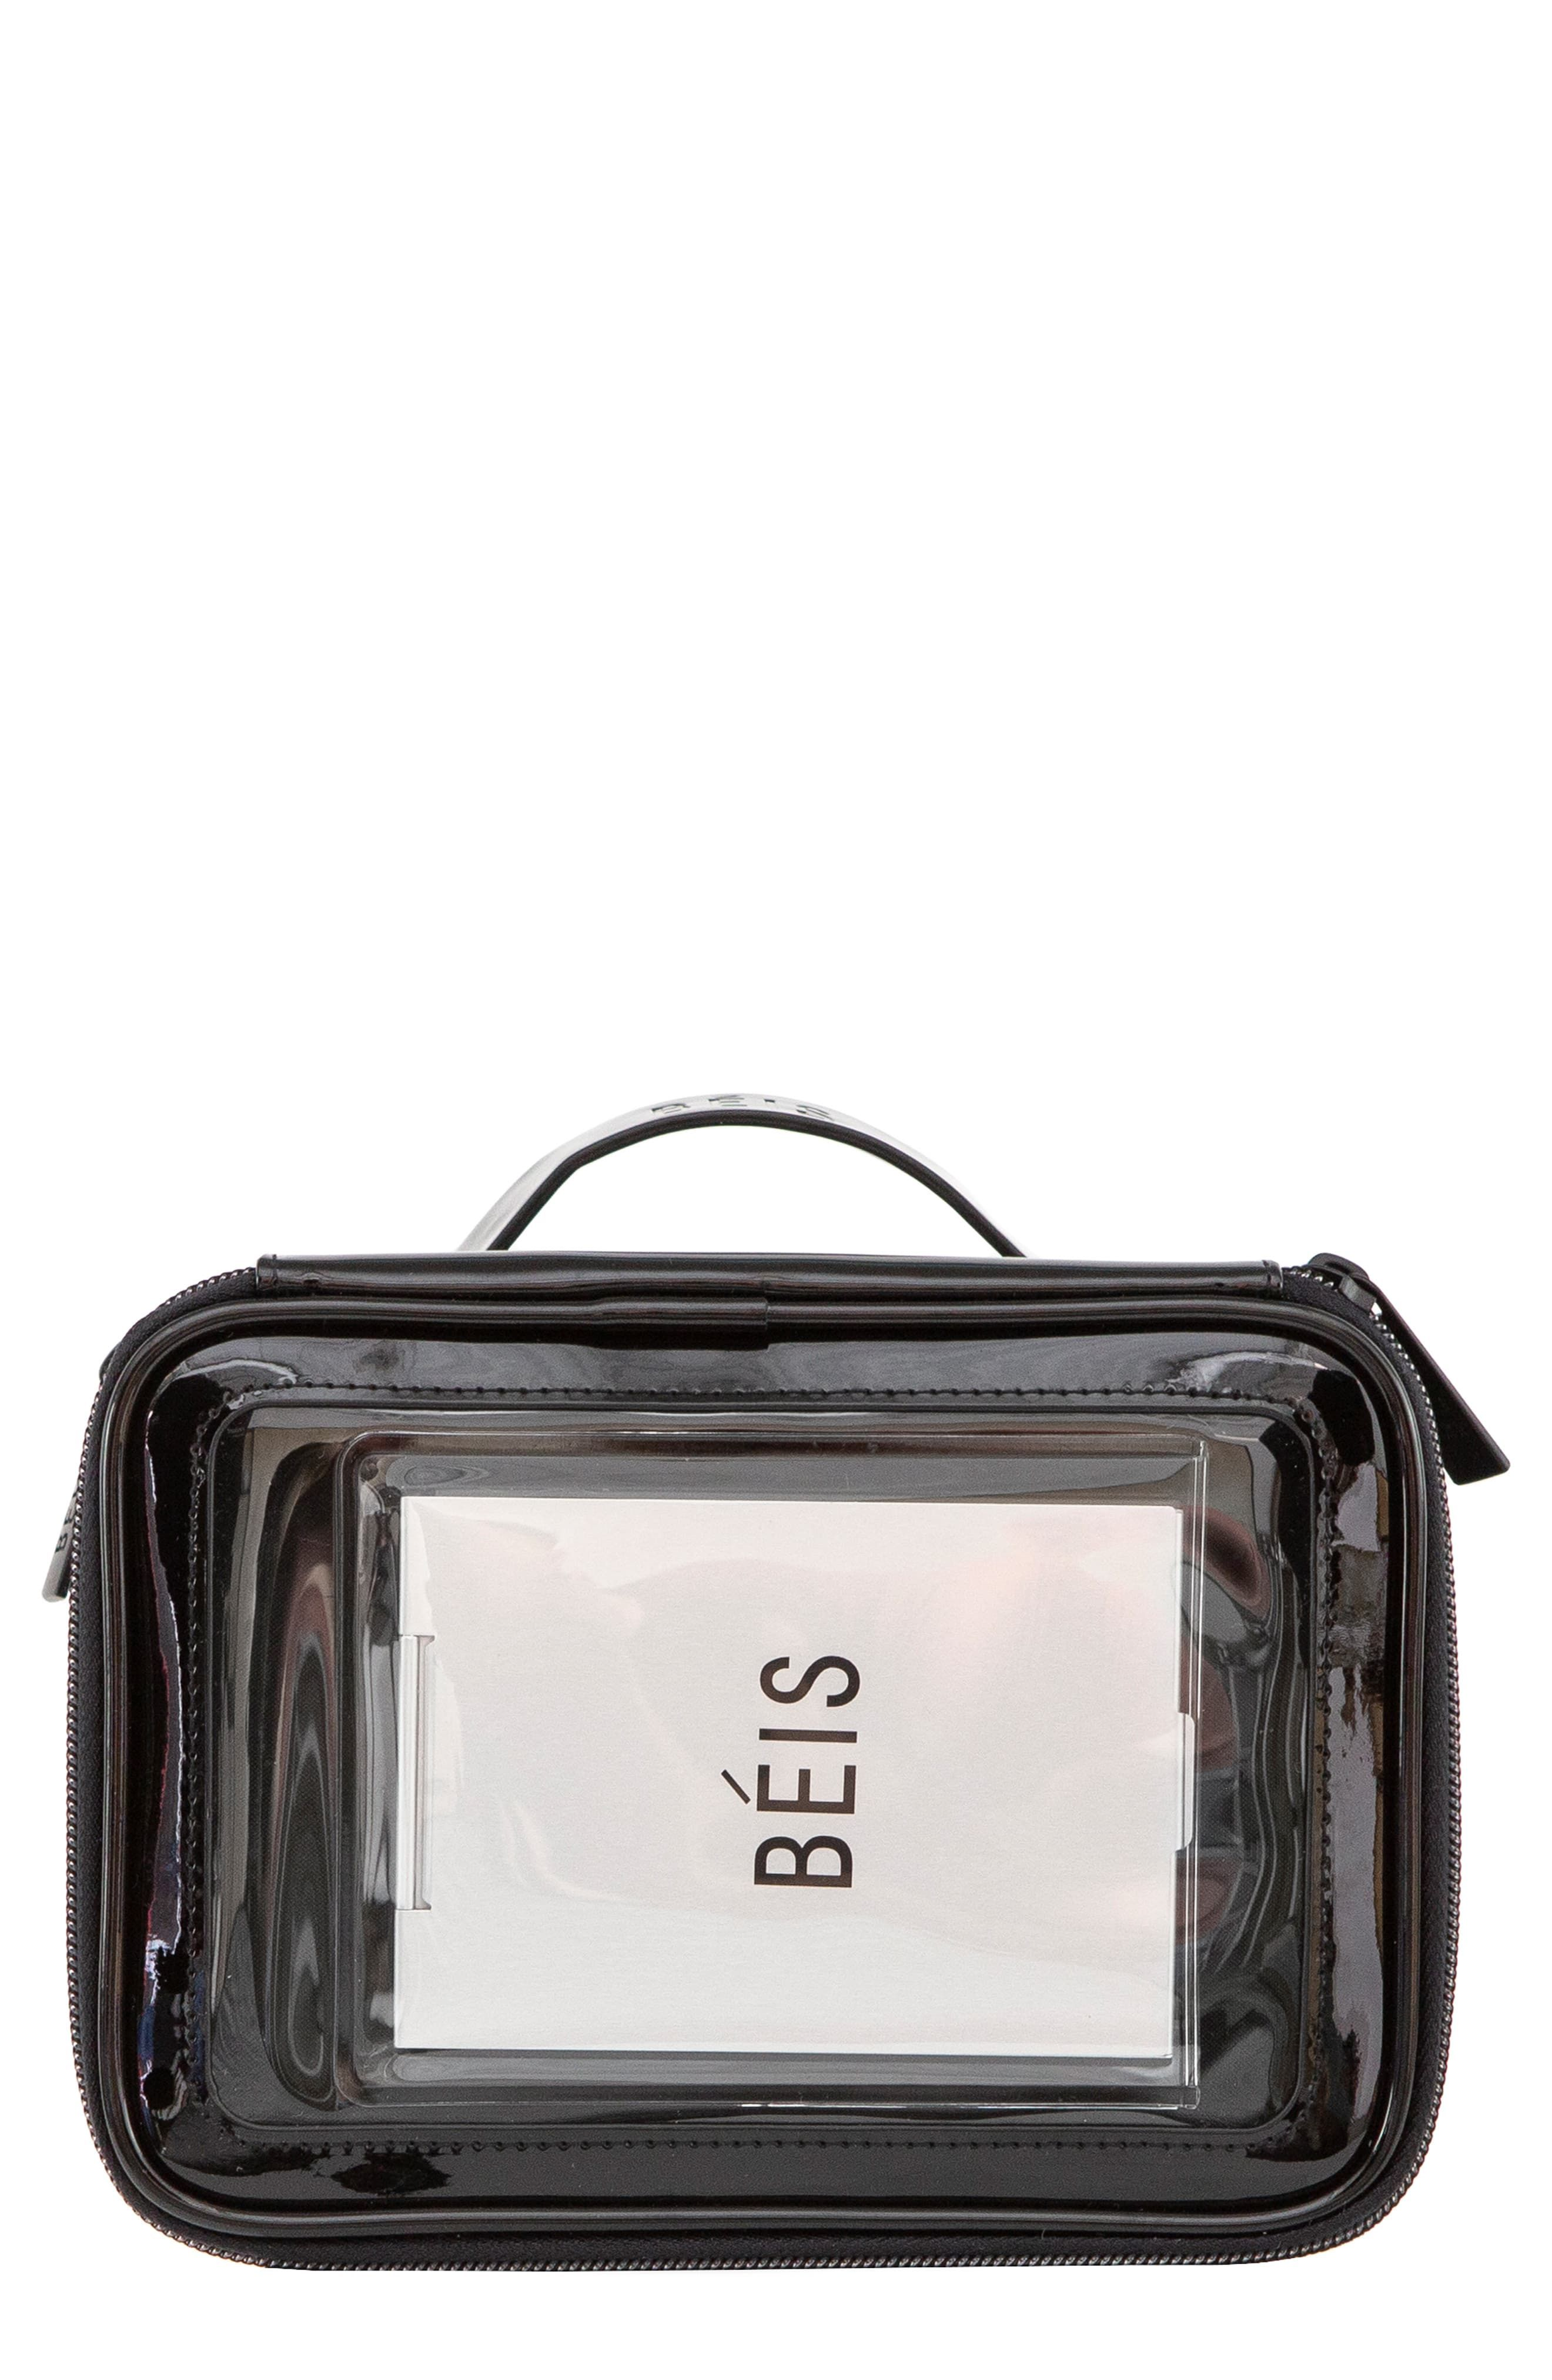 Béis The CarryOn Cosmetics Case Cosmetic case, Carry on